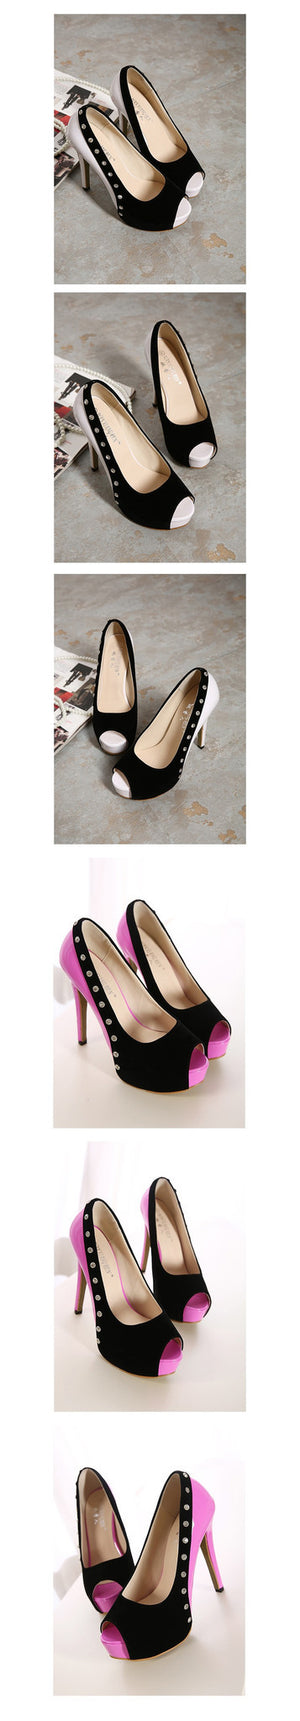 Pink Rhinestone Stiletto Heel Peep Toe High Heels Platform Pumps Dress Shoes